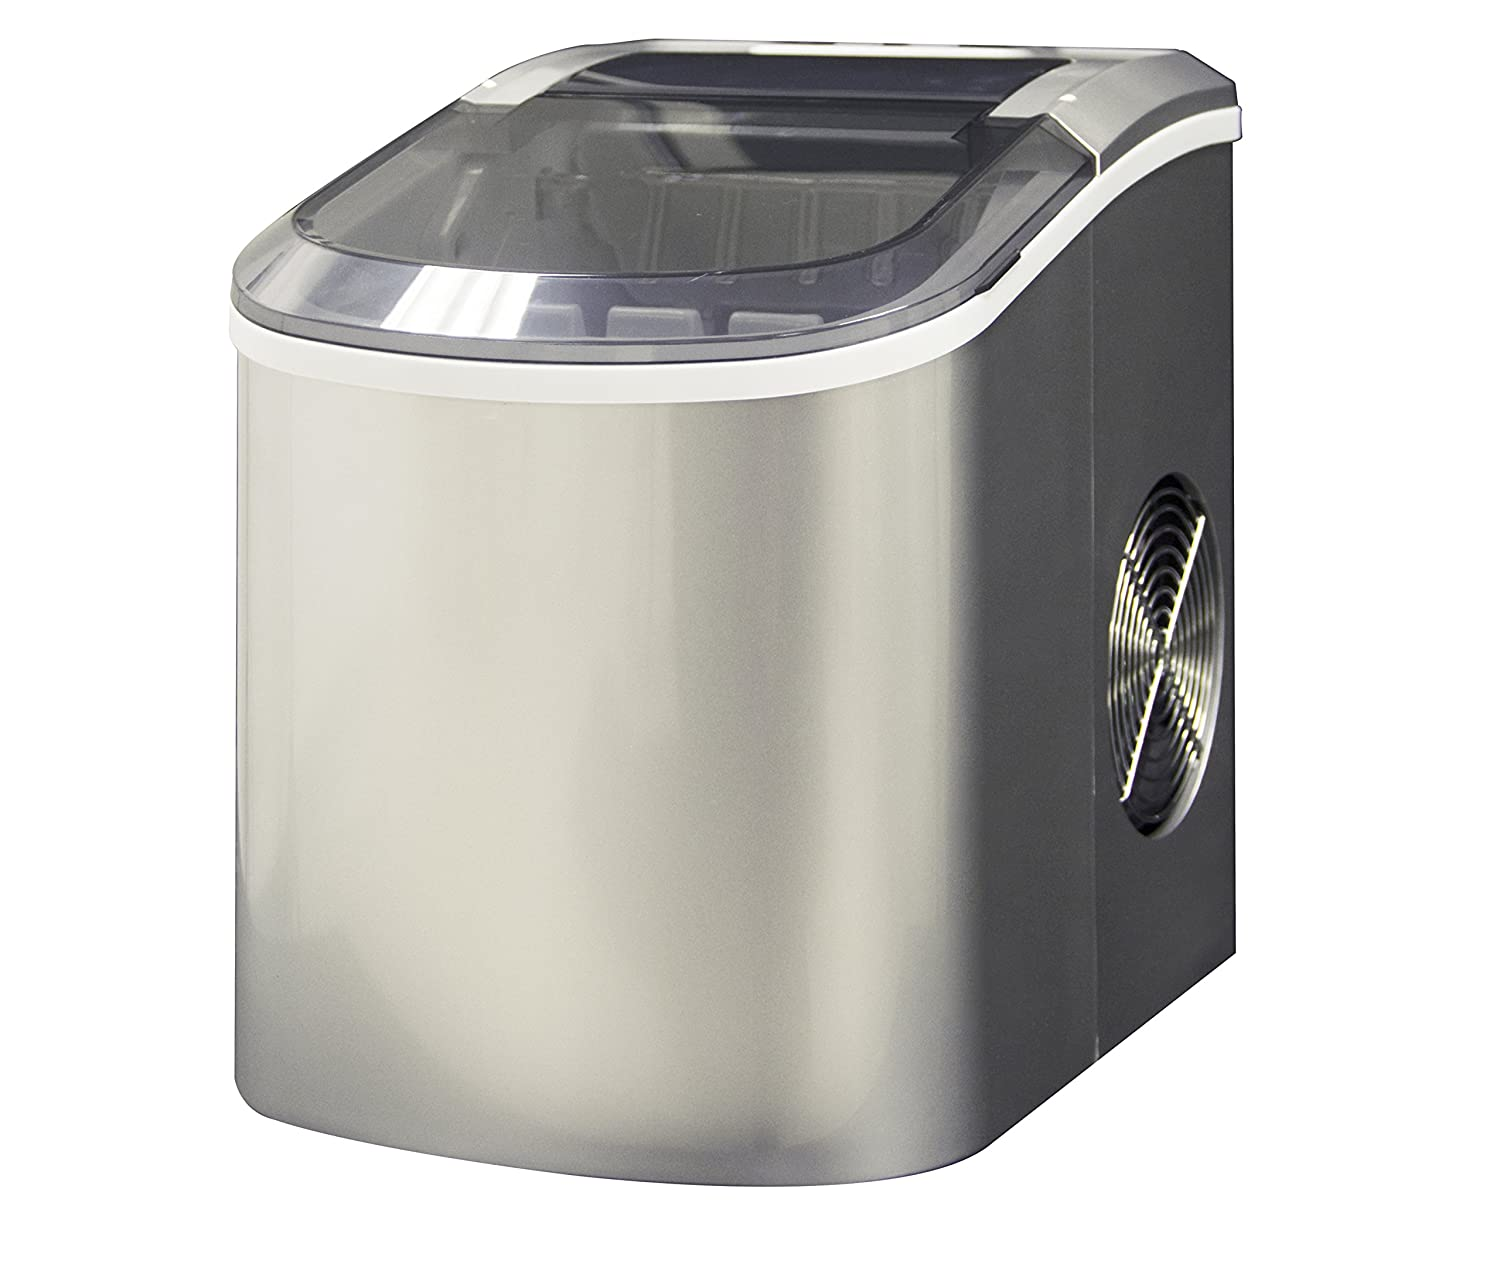 Premium Portable Ice Maker by Glaros for Counter Top - Makes 26 lbs of ice per 24 hours SG Merchandising Solutions Inc.